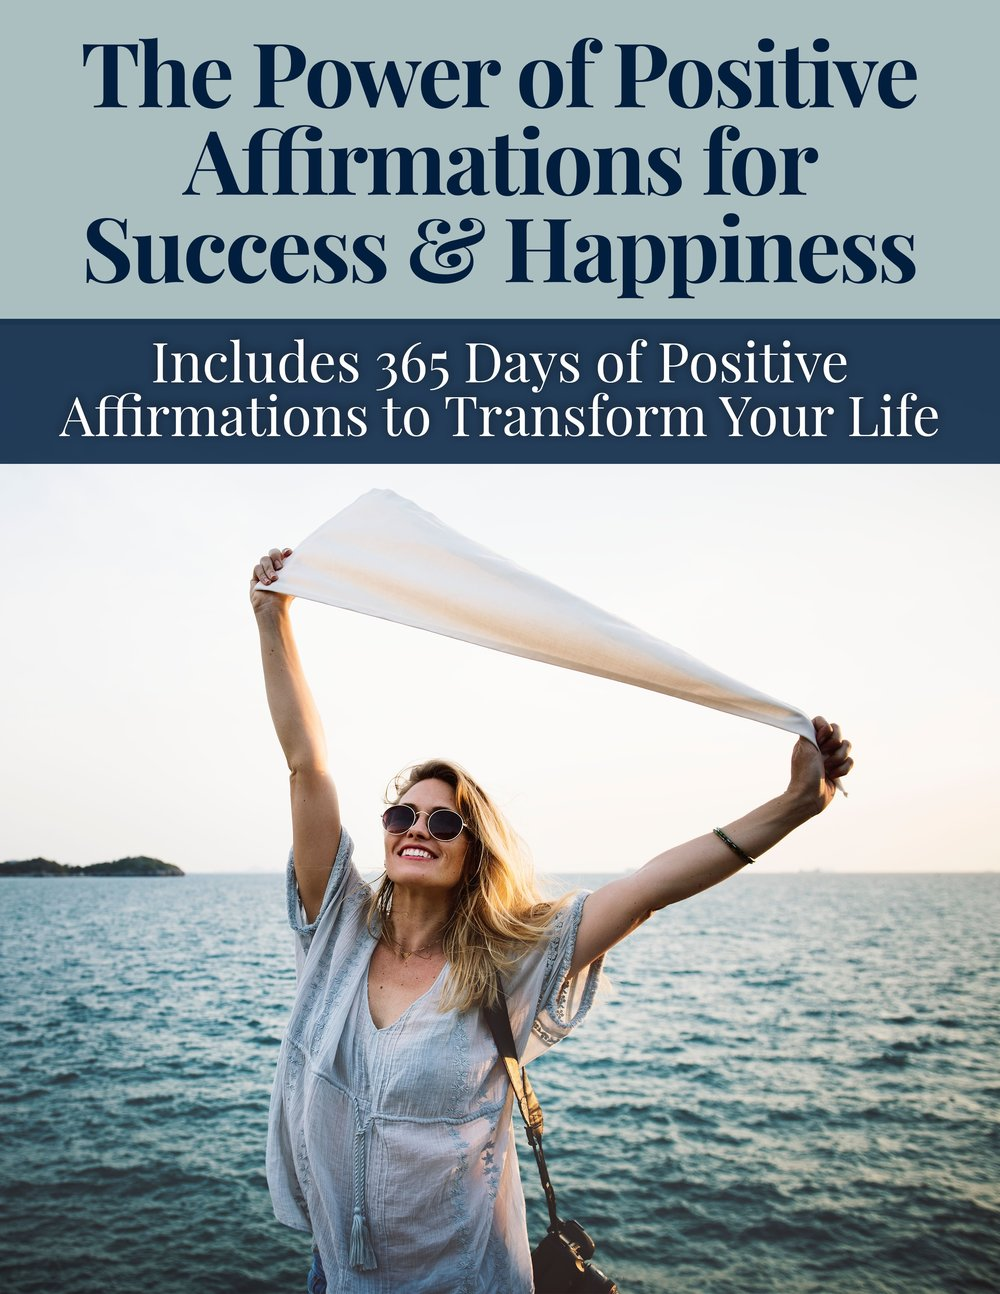 the-power-of-positive-affirmations.jpg